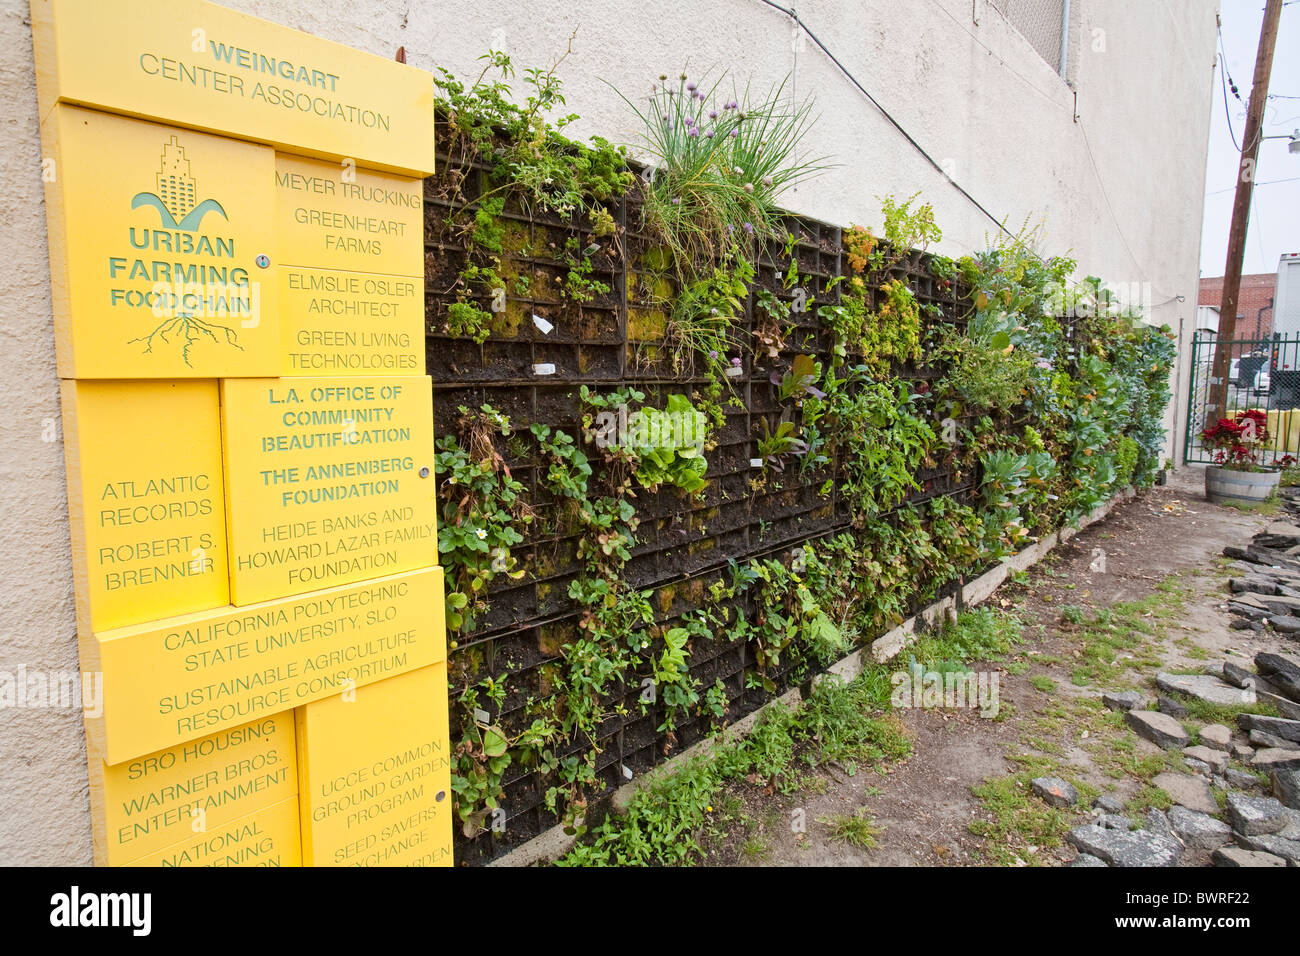 The Edible Garden wall vertical garden created by Urban Farming